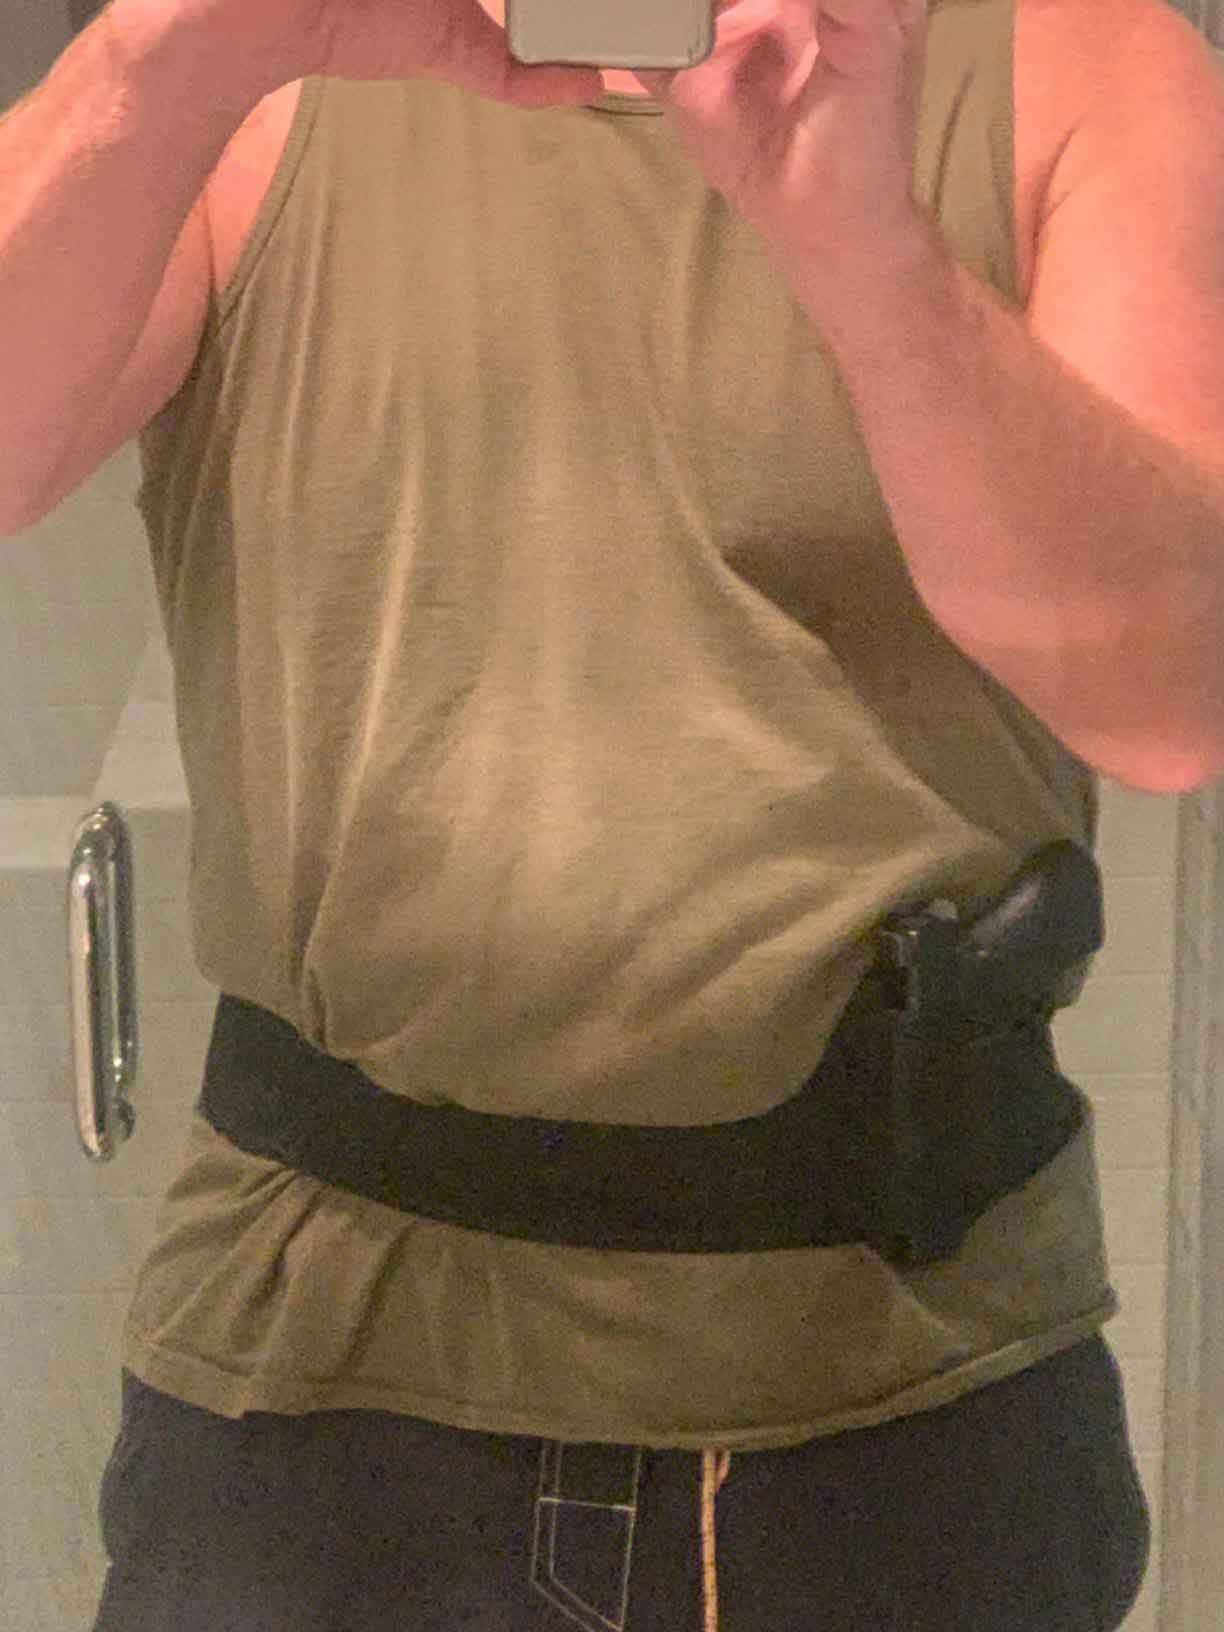 Dinosaurized | Praetorian shoulder & Belly holster |  100% concealed | Best holster for seated draw | 100% comfort | no smell | easy to use | Best holster for police officers | Best shoulder holster for farmers | Best shoulder holster for fathers | Best shoulder holster for dads | Best shoulder holster for ladies | Best shoulder holster for car owners | Best shoulder holster for Uber driver| Best shoulder holsters | police shoulder holster||shoulder holster revolver | shoulder holster for revolver | shoulder holster for concealed carry | shoulder gun holster | Best holster for drivers | best women's shoulder holster | shoulder holster concealed carry | shoulder carry holster